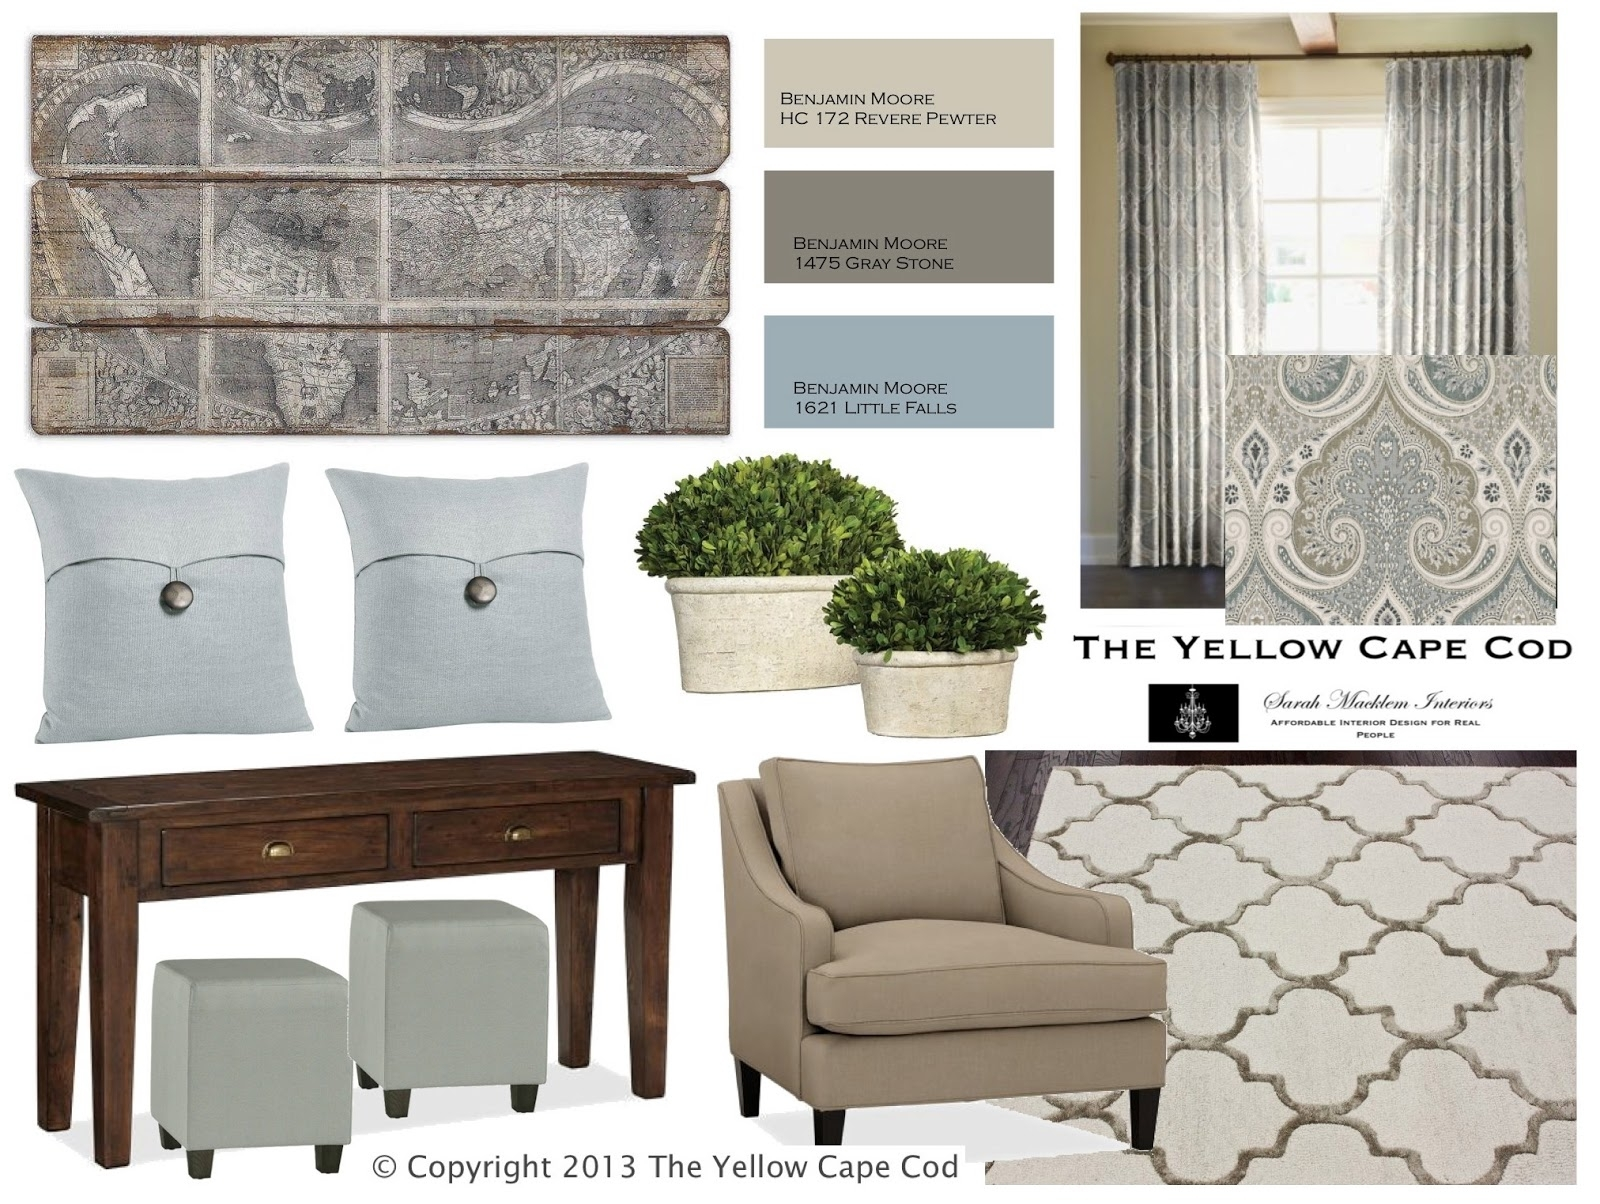 The Yellow Cape Cod| Revere Pewter With Light Blue Accents And Within 2018 Wall Accents For Revere Pewter (View 15 of 15)